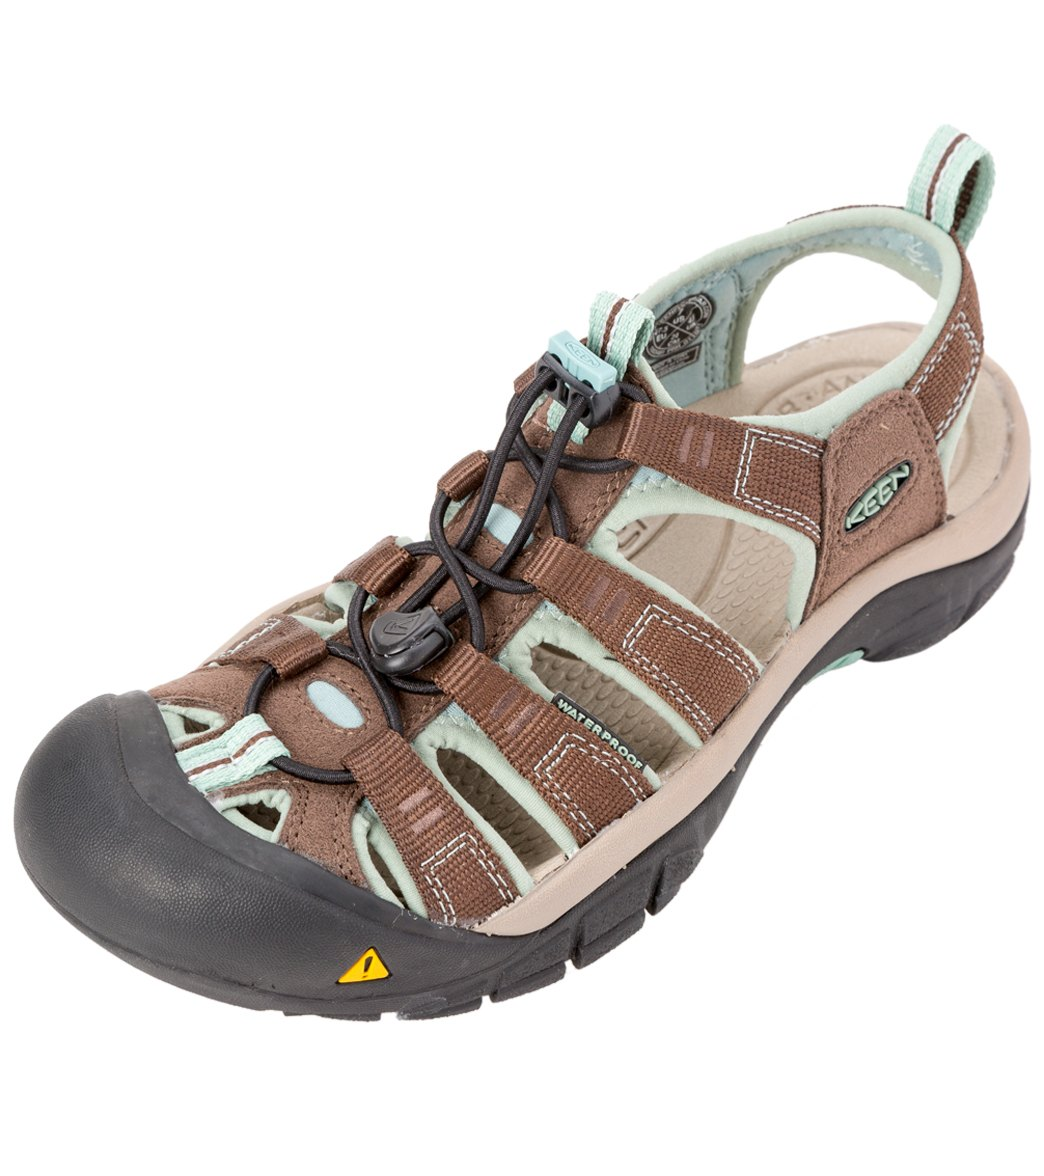 e230cd572f16 Keen Women s Newport H2 Water Shoes at SwimOutlet.com - Free Shipping